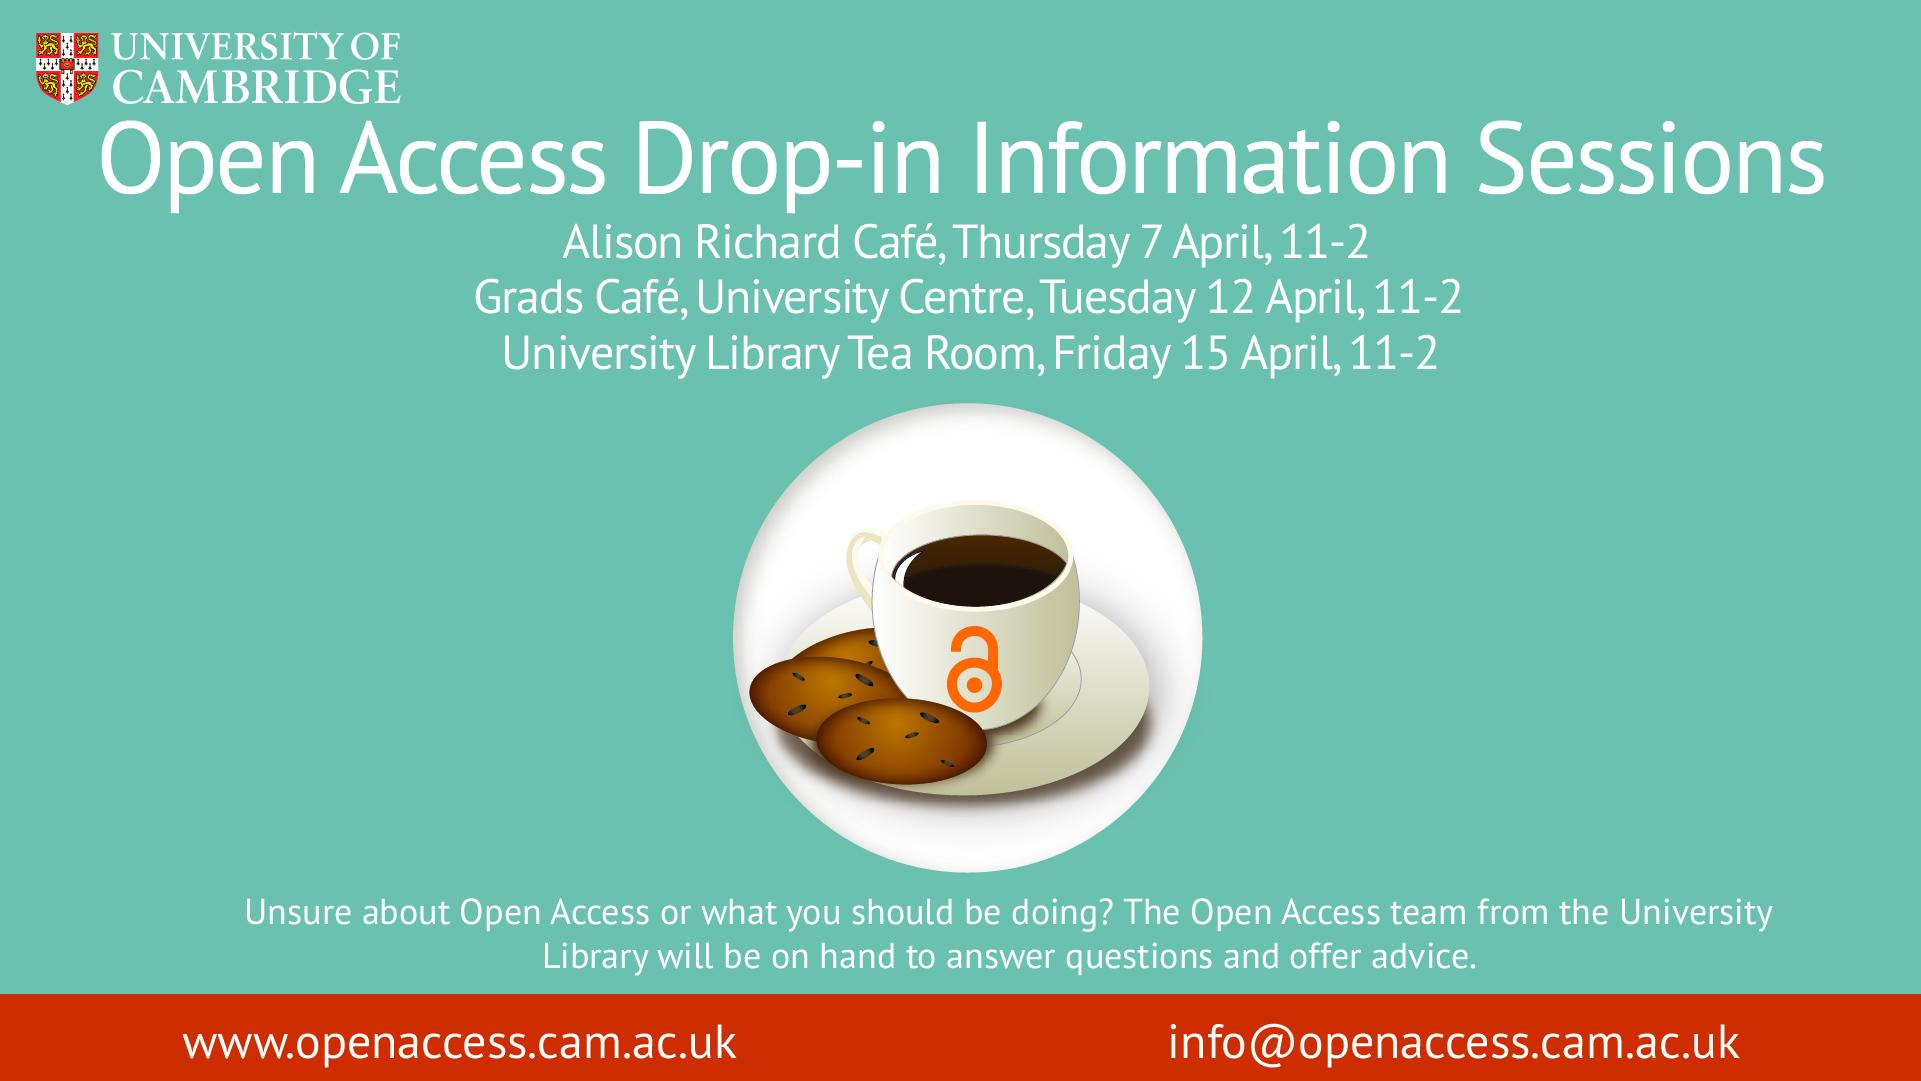 Open Access drop-in sessions